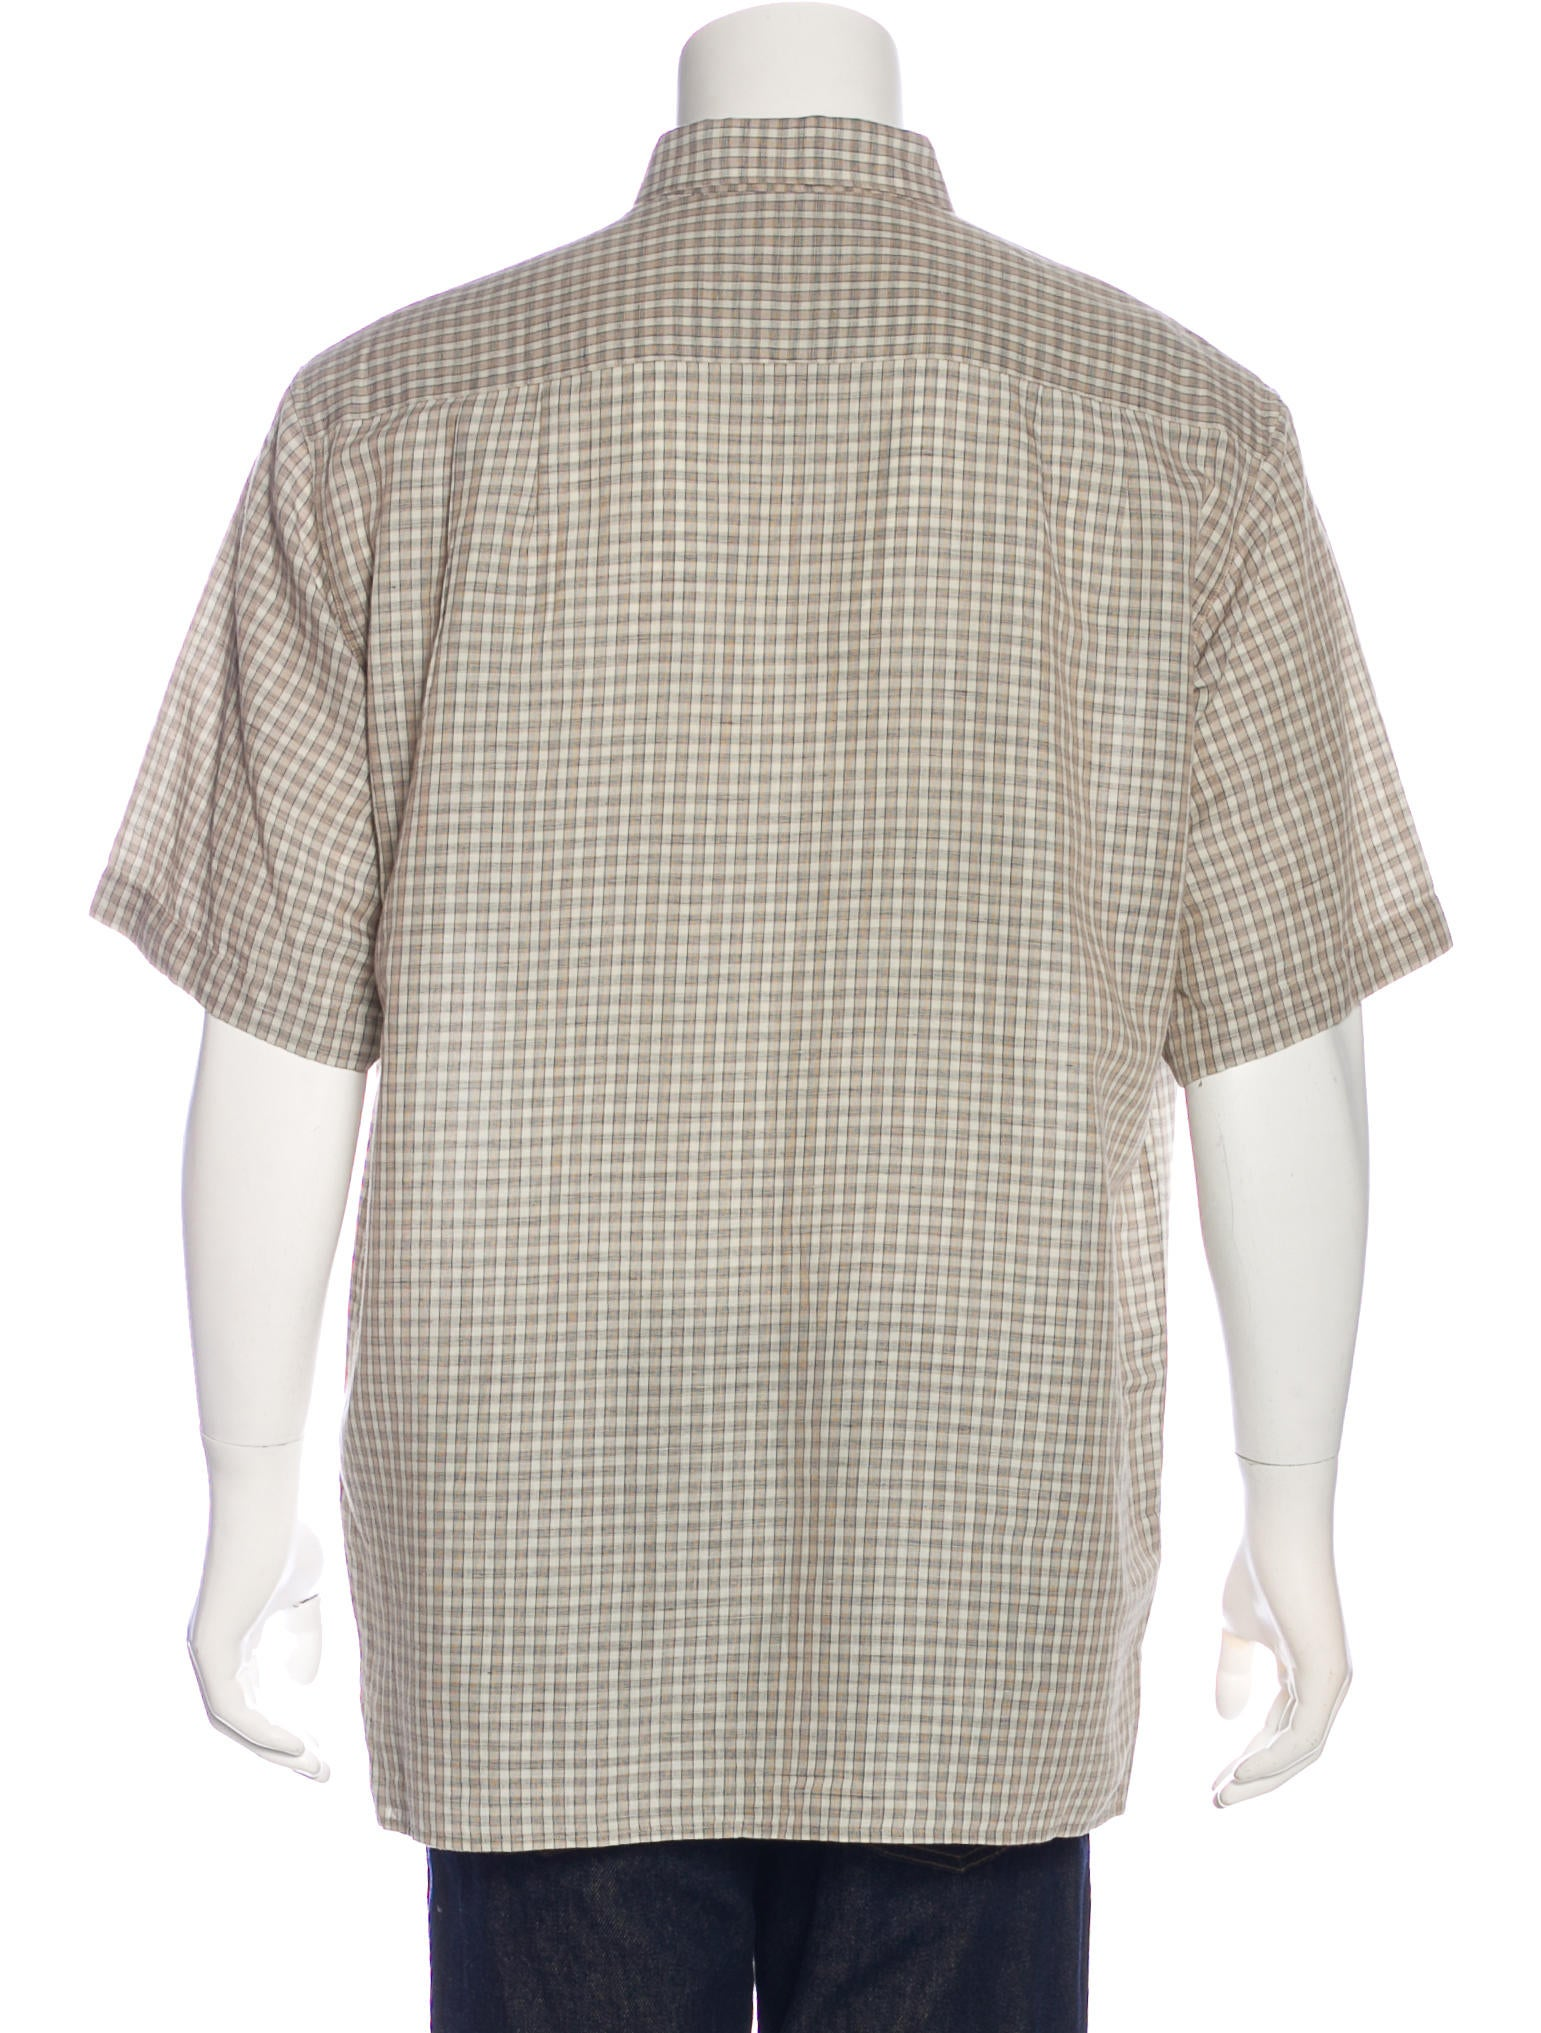 To enjoy the cool feel of linen in a short sleeved shirt, explore our collection of striped and solid colored linen blend shirts. Made from natural fabrics, items in this assortment are popular favorites for comfort and style. The cool feel of natural linen is blended with high quality cotton for .